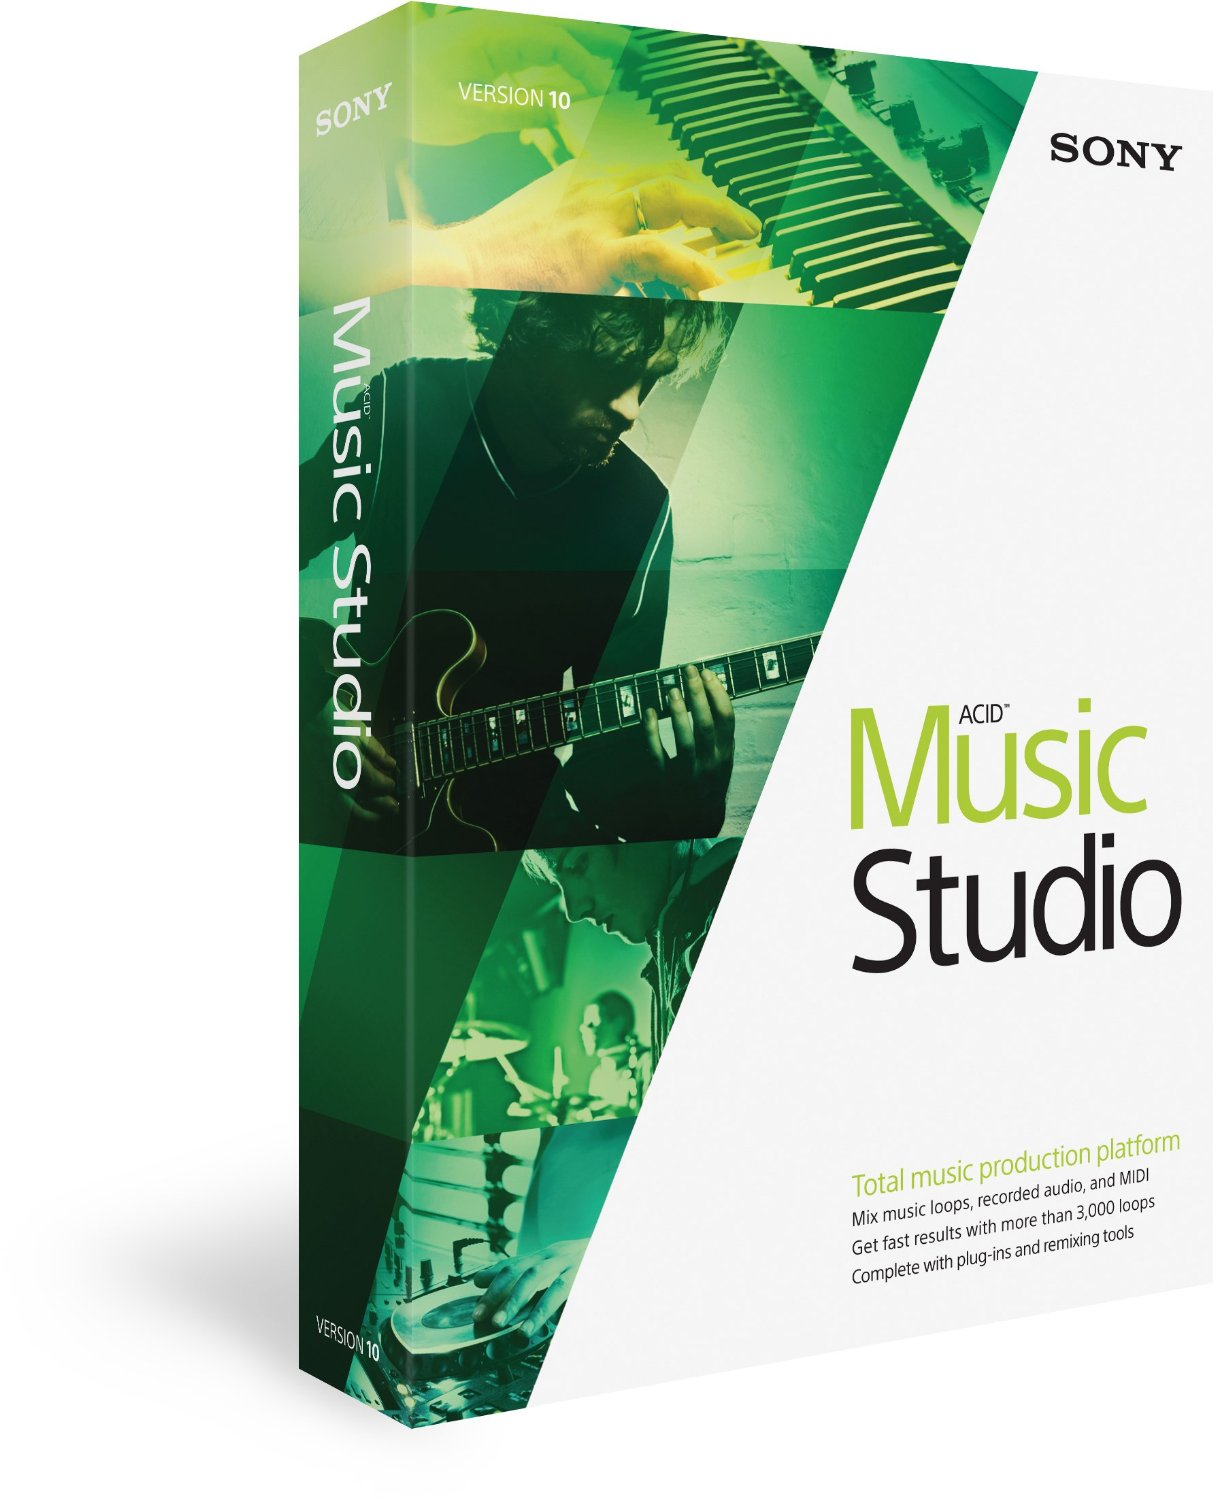 Acid music studio 10 download for pc free.